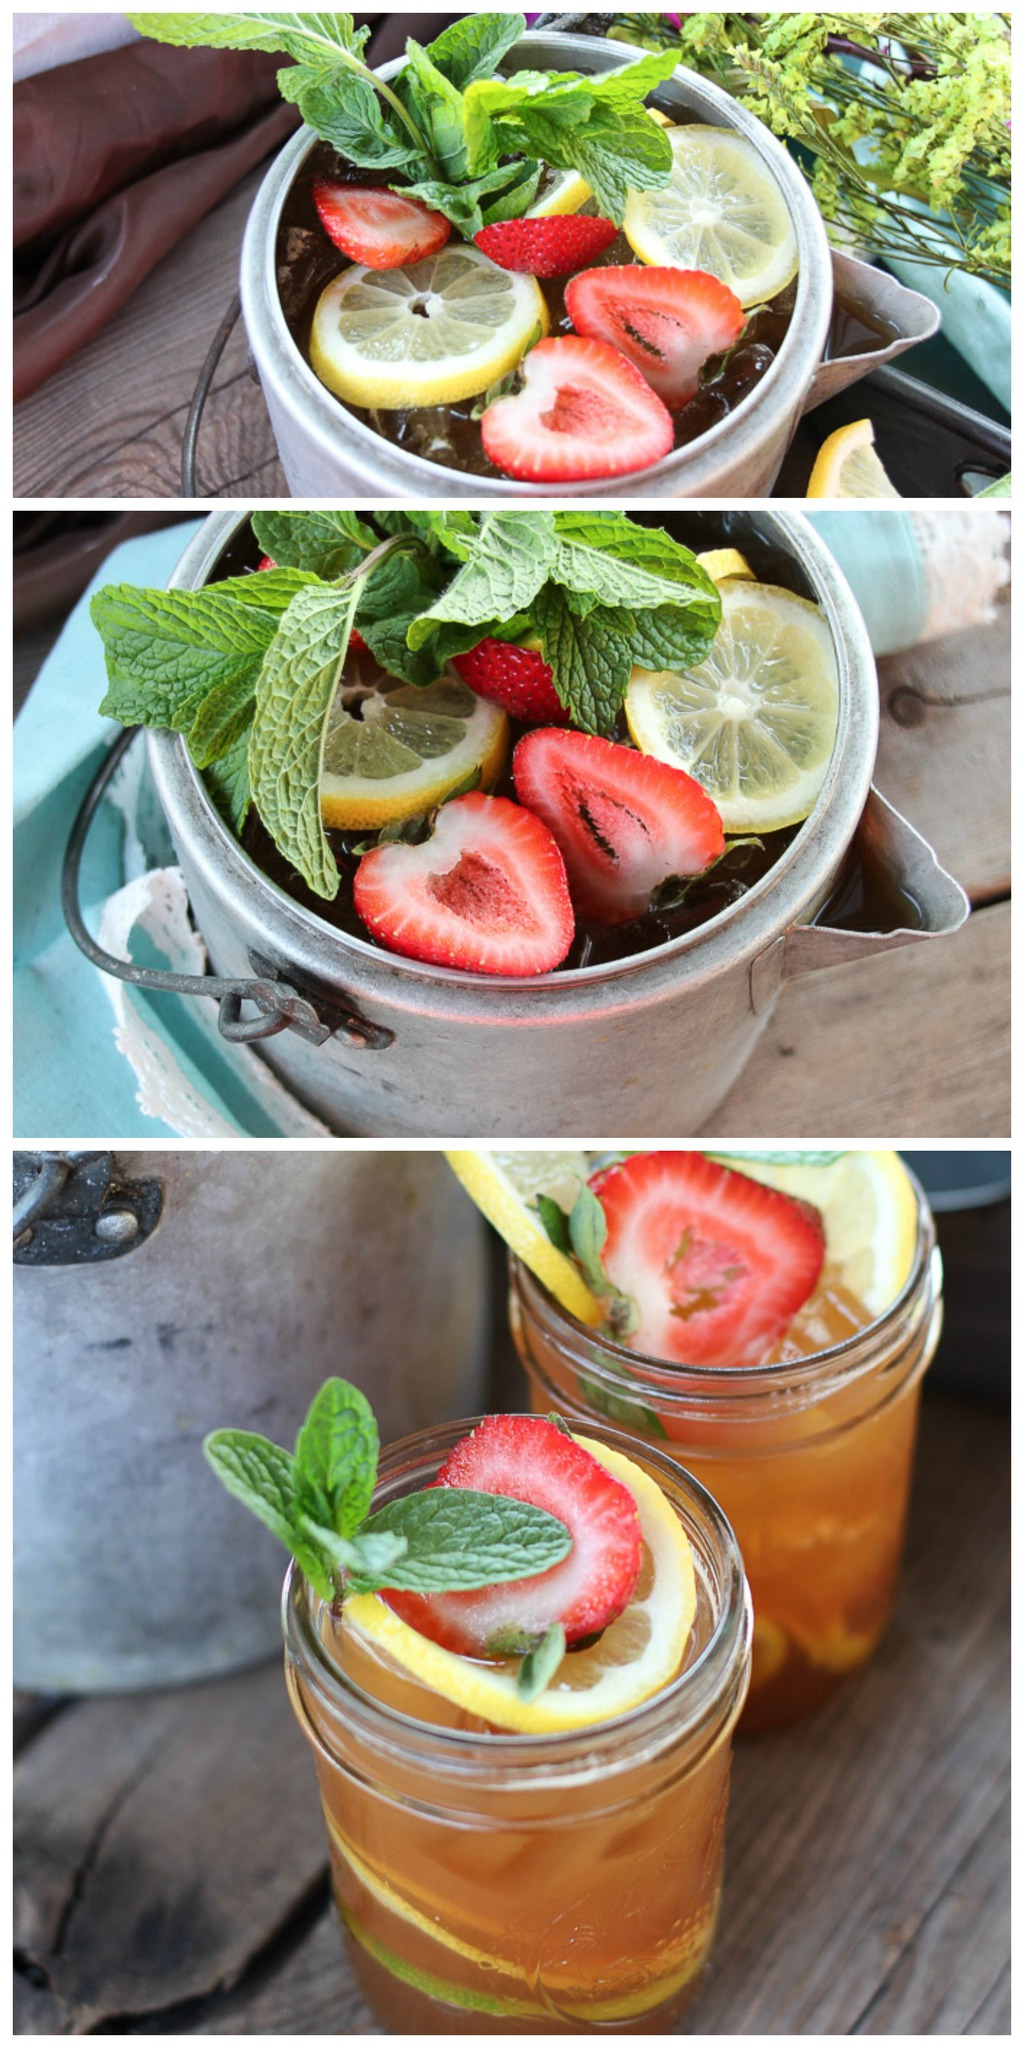 This ice tea is calling your name. Our summer ice tea cocktail has strawberries, Jack Daniels Whiskey, Lemon and mint. Get the recipe on the blog and make this easy summer cocktail today!